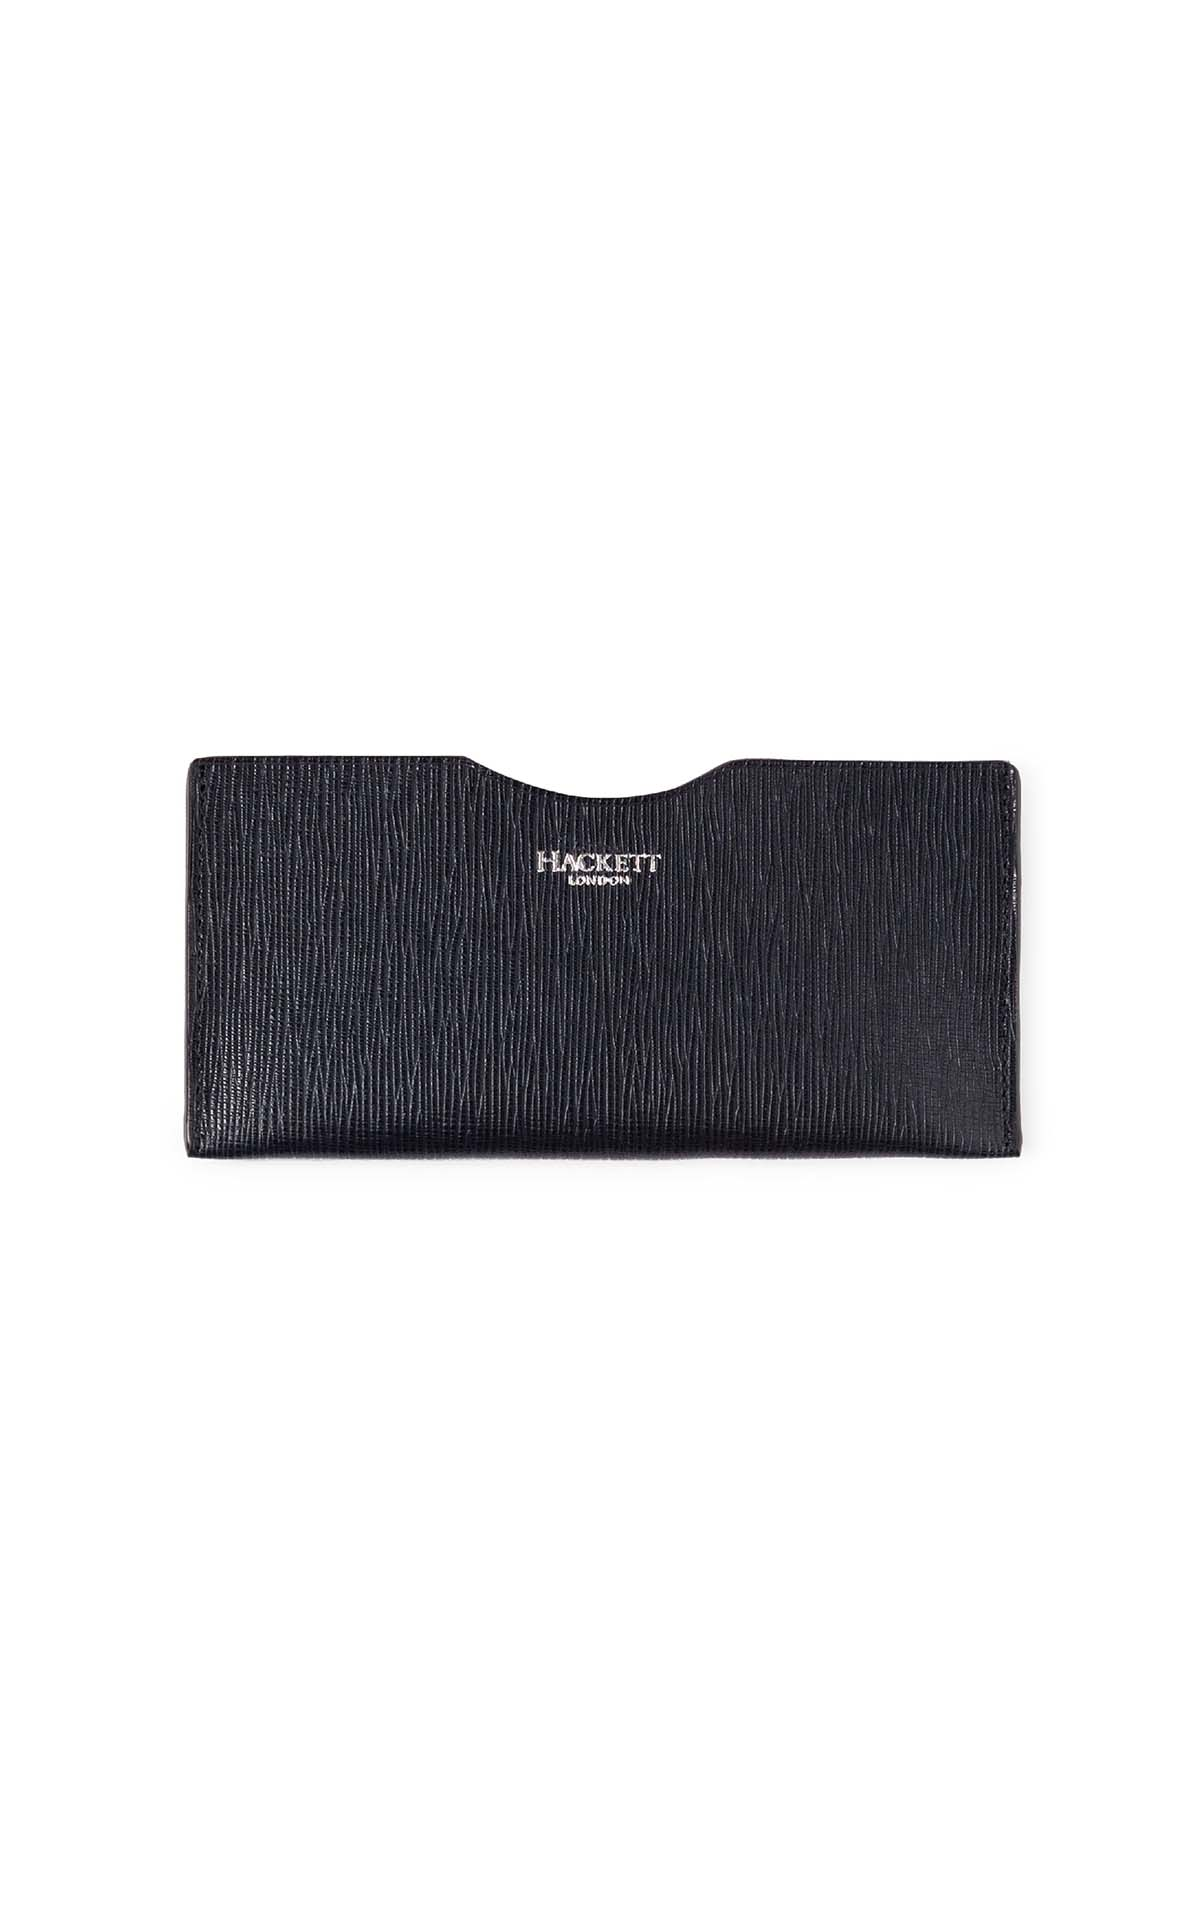 Hackett London Myf leather phone slip at The Bicester Village Shopping Collection